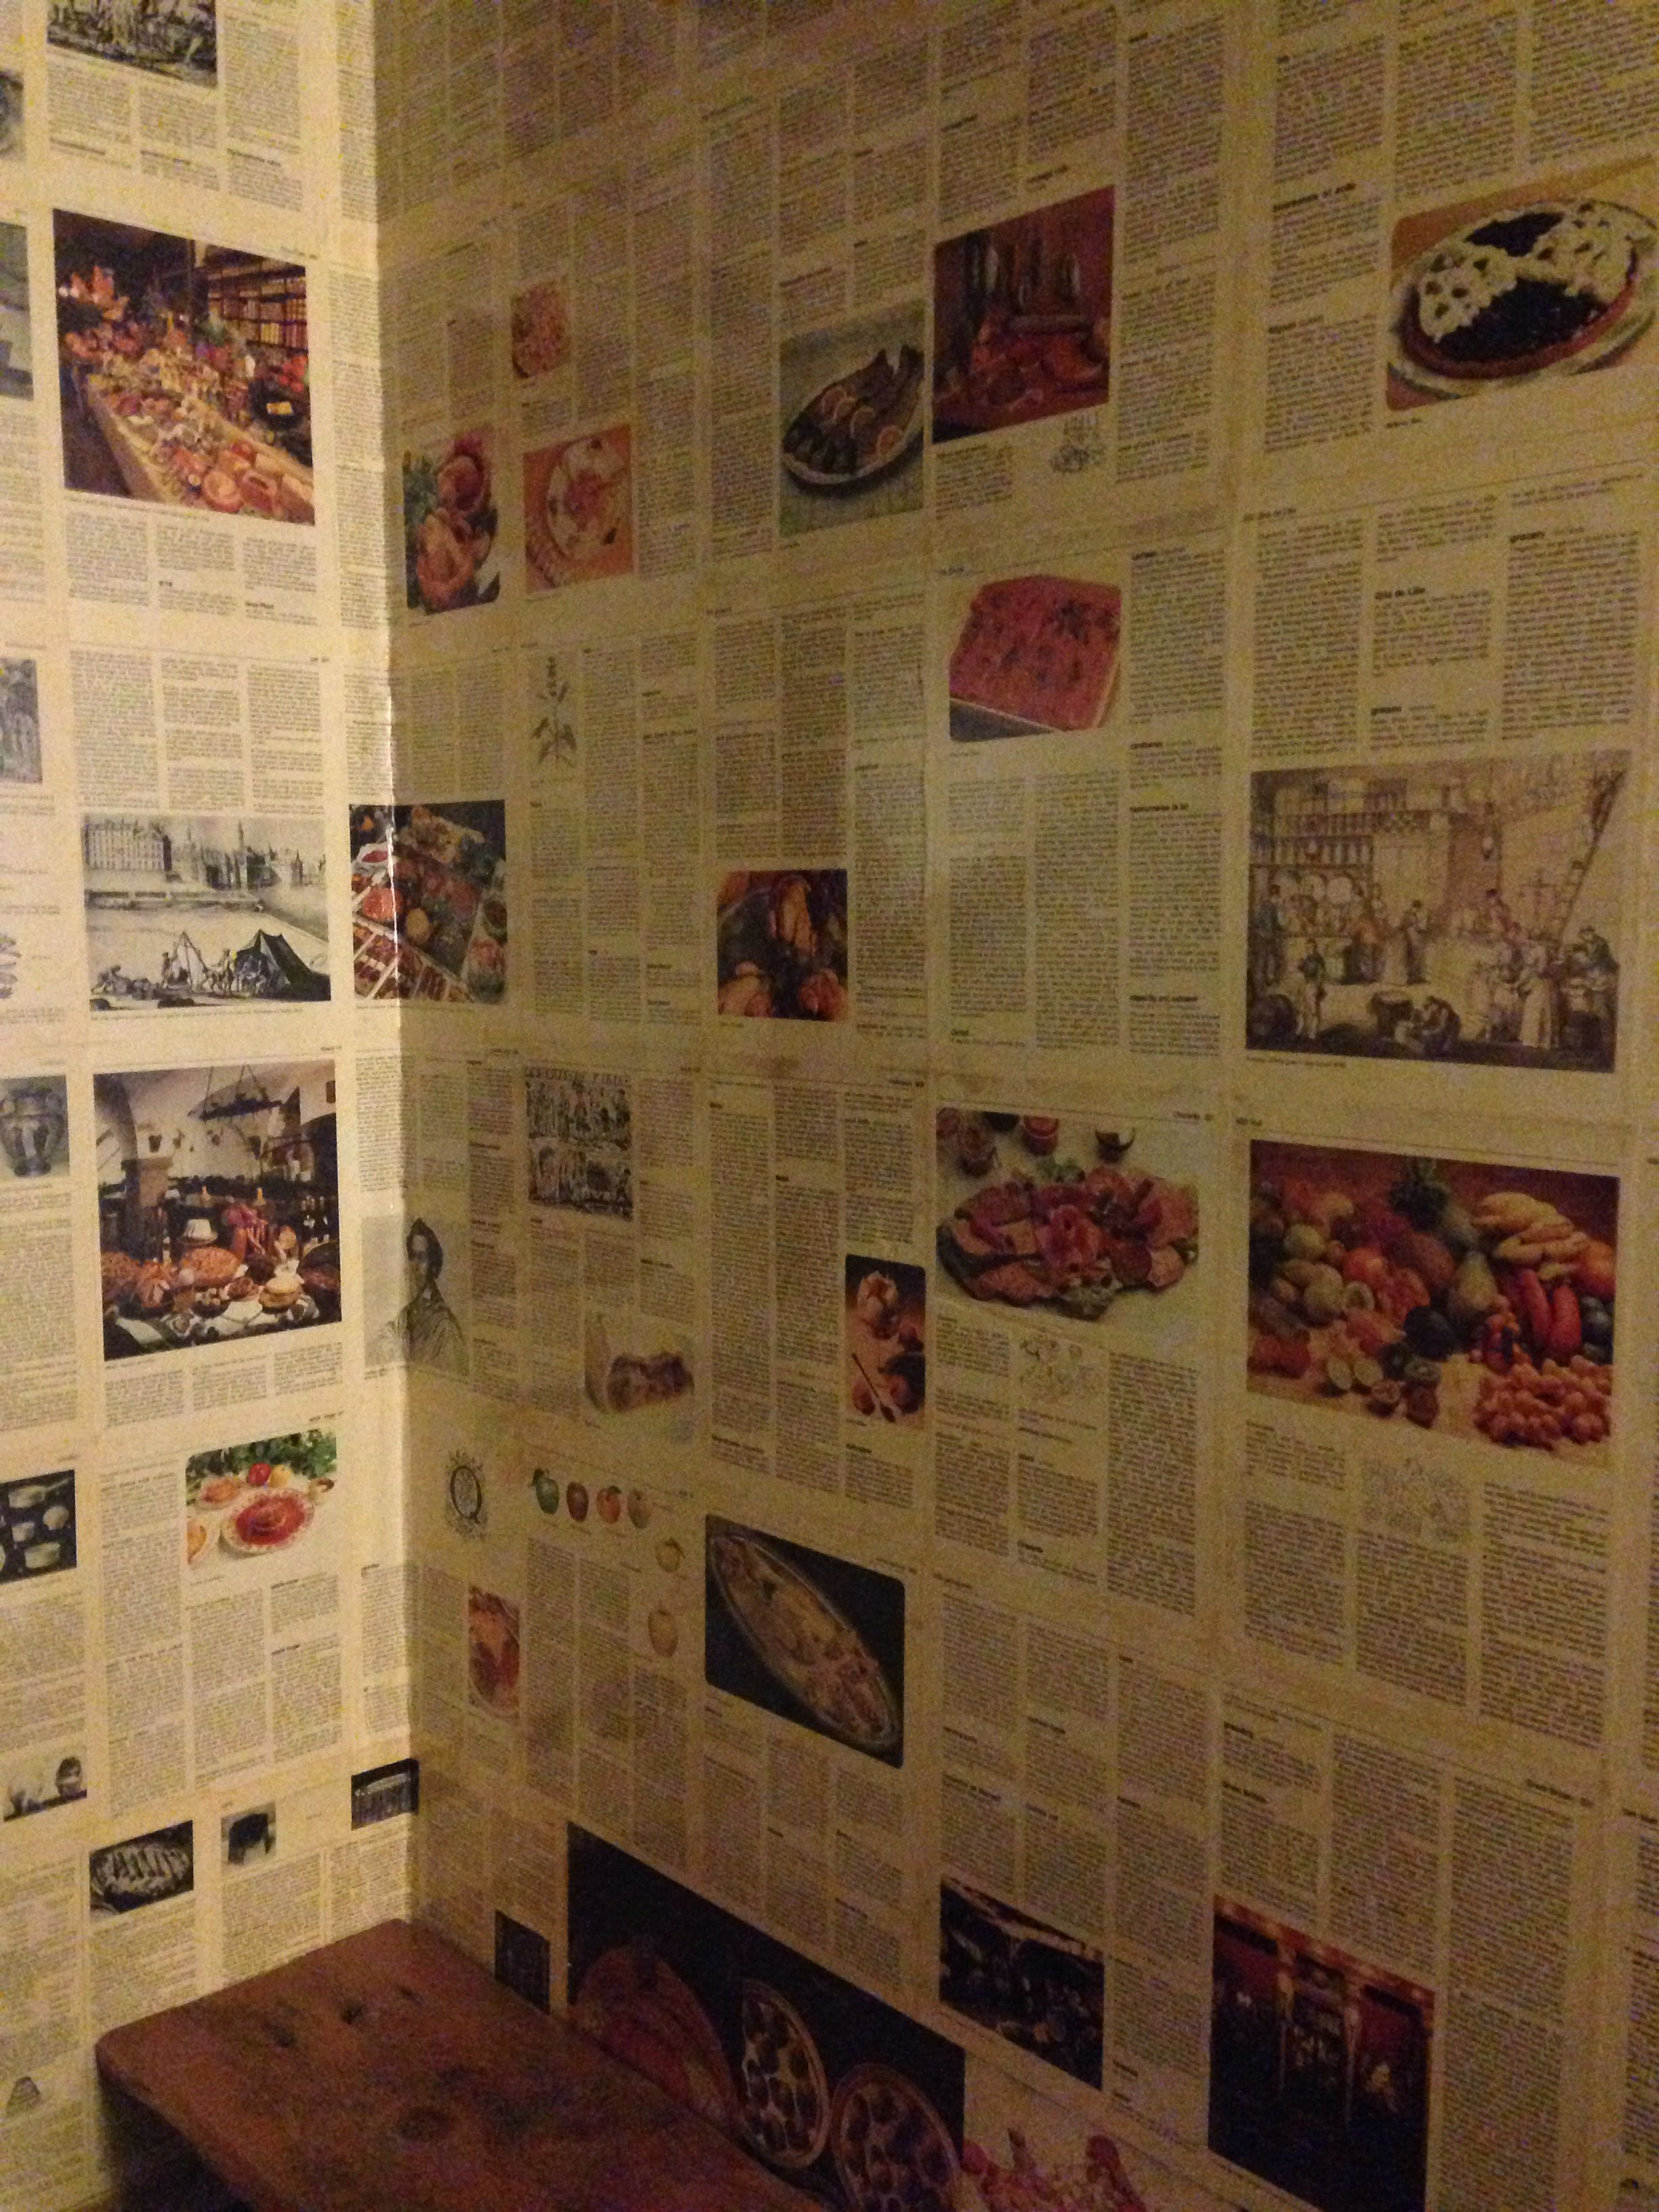 cookbook wallpaper! found this in a restaurant bathroom but am